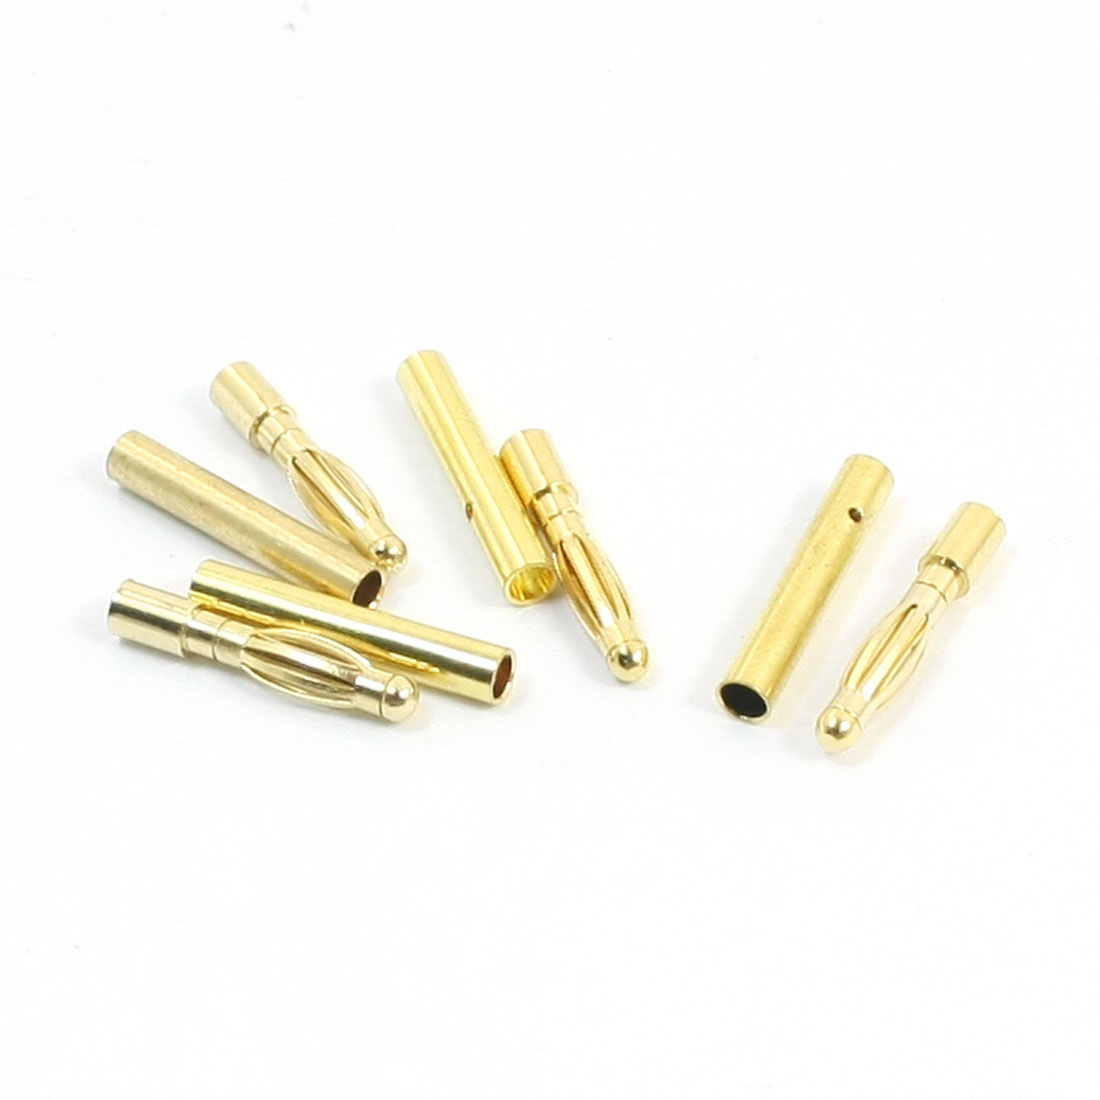 4 Pairs Gold Tone Metal 2mm Banana Connector Adapter for RC LiPo Battery ESC Brushless Motor